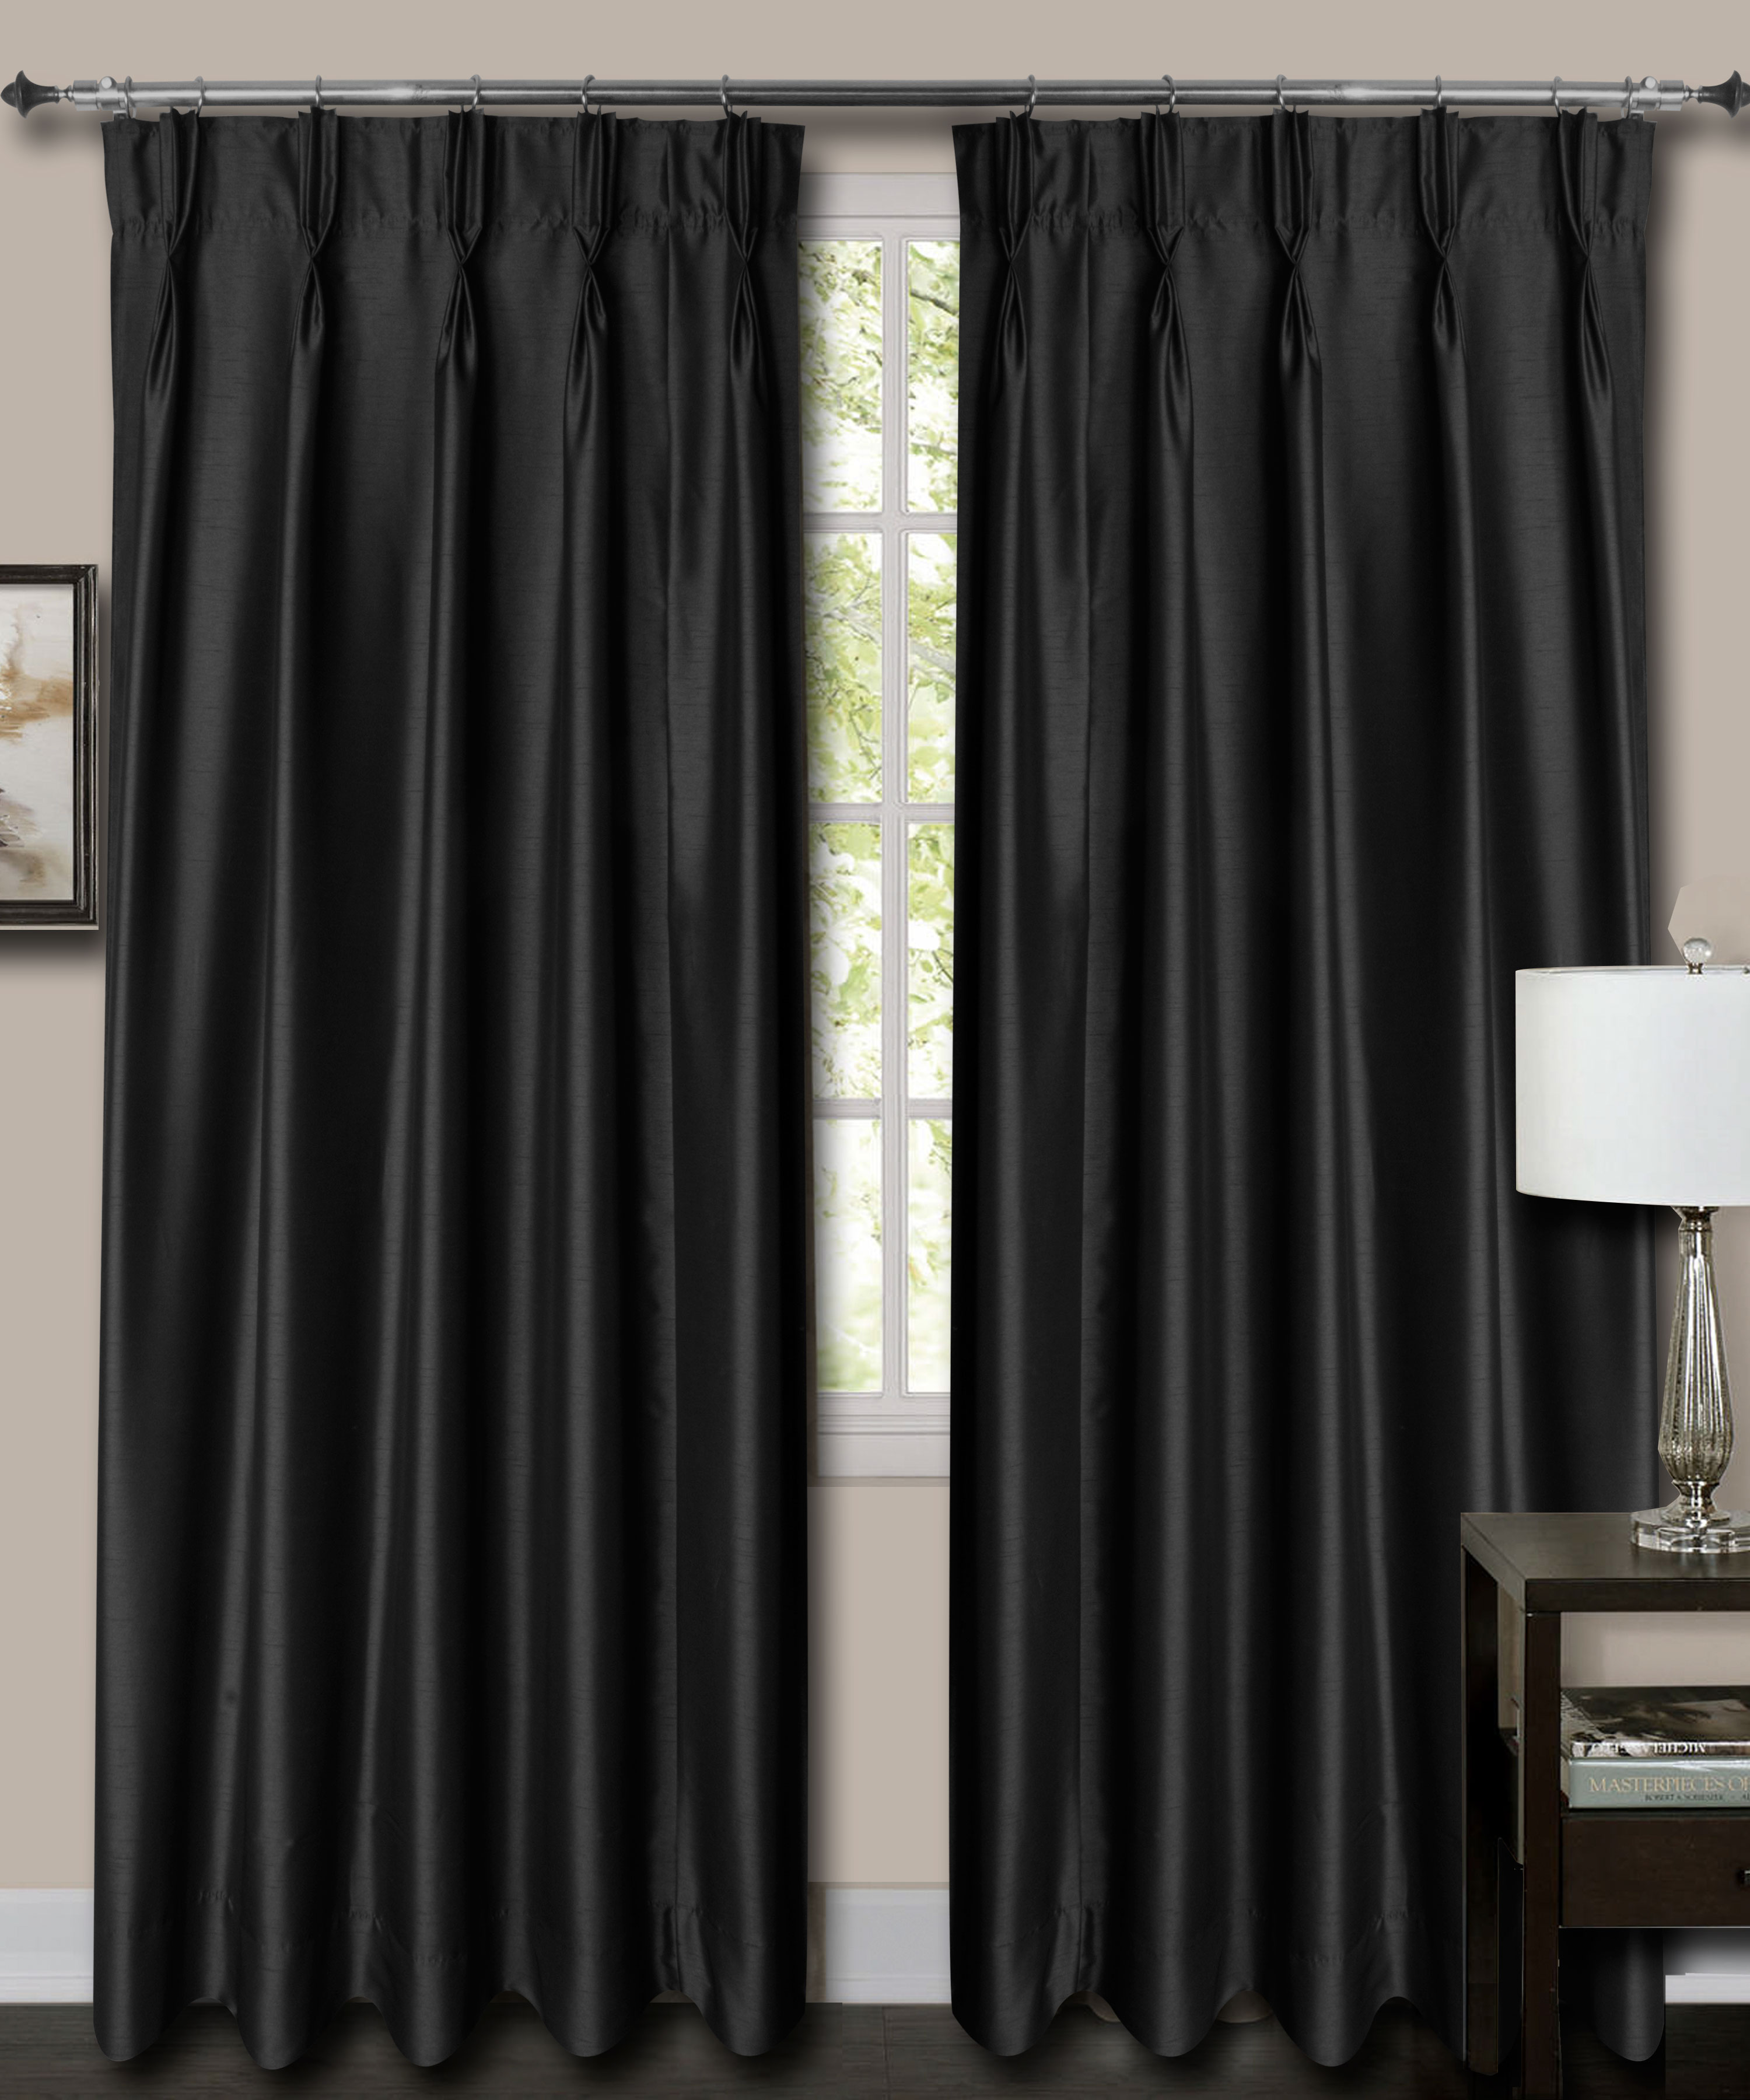 "French Pleat Top Black Faux Silk Dupioni Curtains. (24"" Wide, 8 Feet Long, Blackout Lining)"